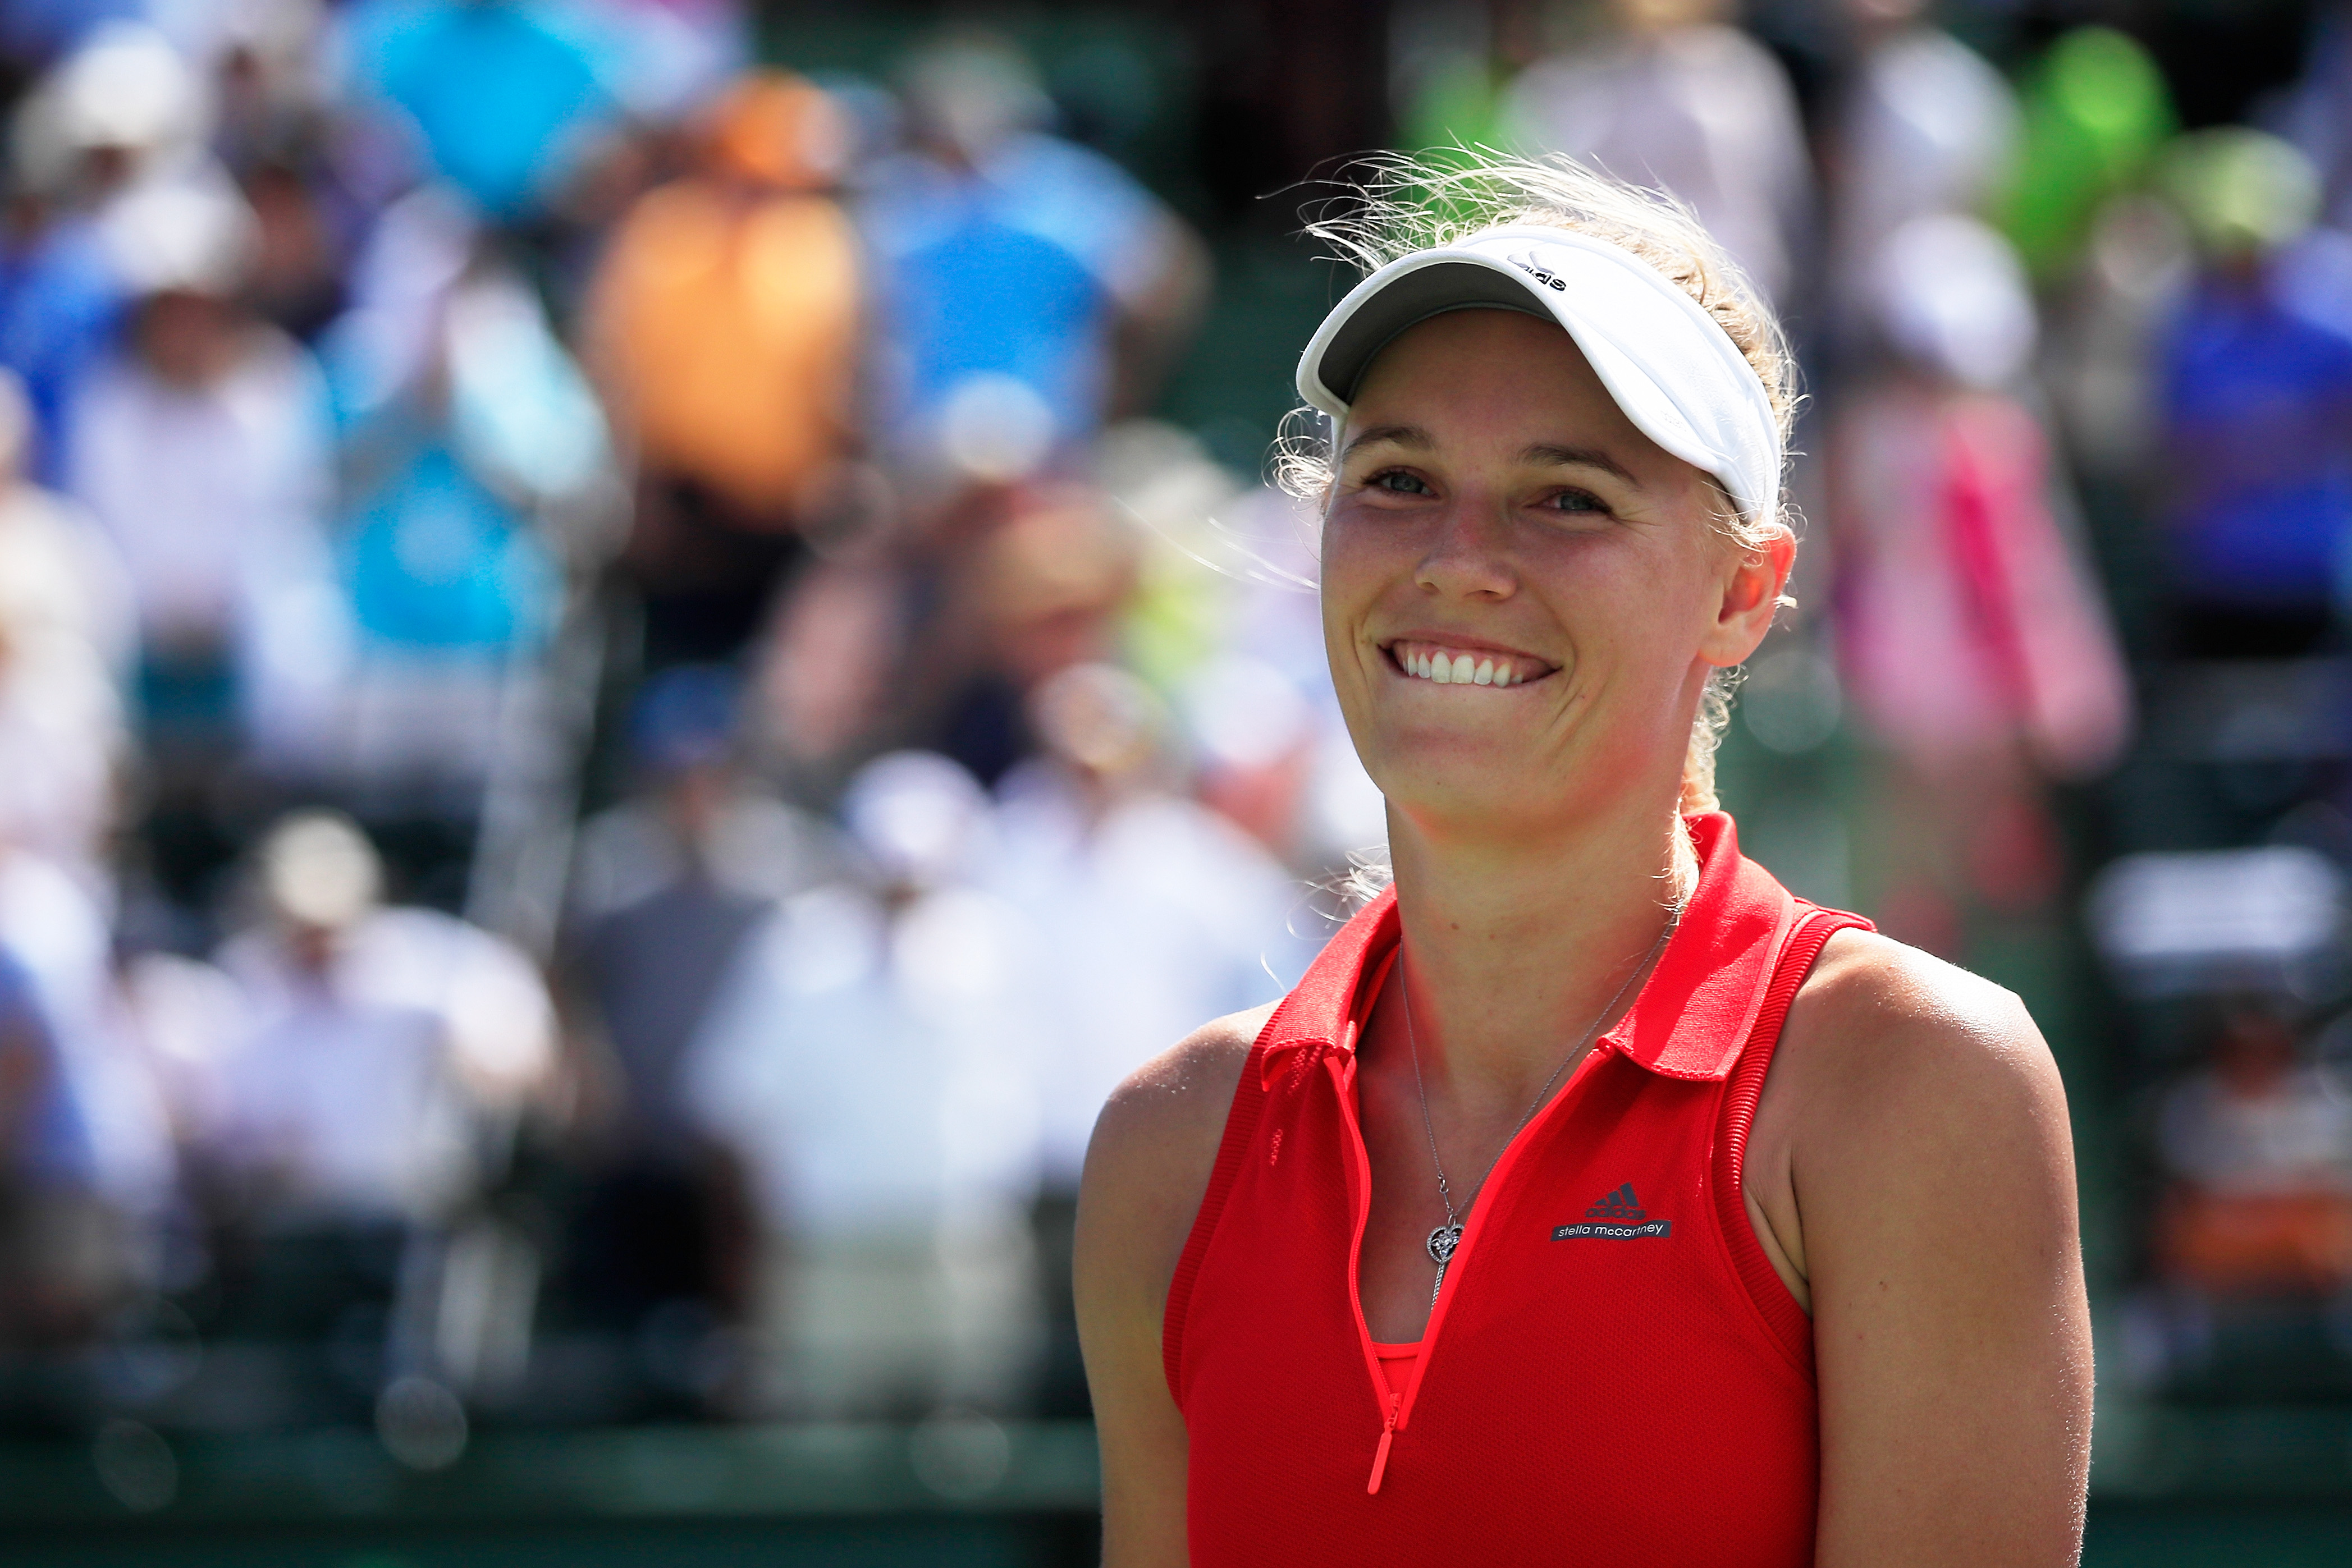 KEY BISCAYNE, FL - MARCH 30: Caroline Wozniacki of Denmark celebrates defeating Karolina Pliskova of Czech Republic in the semi finals during Day 11 of the Miami Open at Crandon Park Tennis Center on March 30, 2017 in Key Biscayne, Florida. (Photo by Cliff Hawkins/Getty Images)